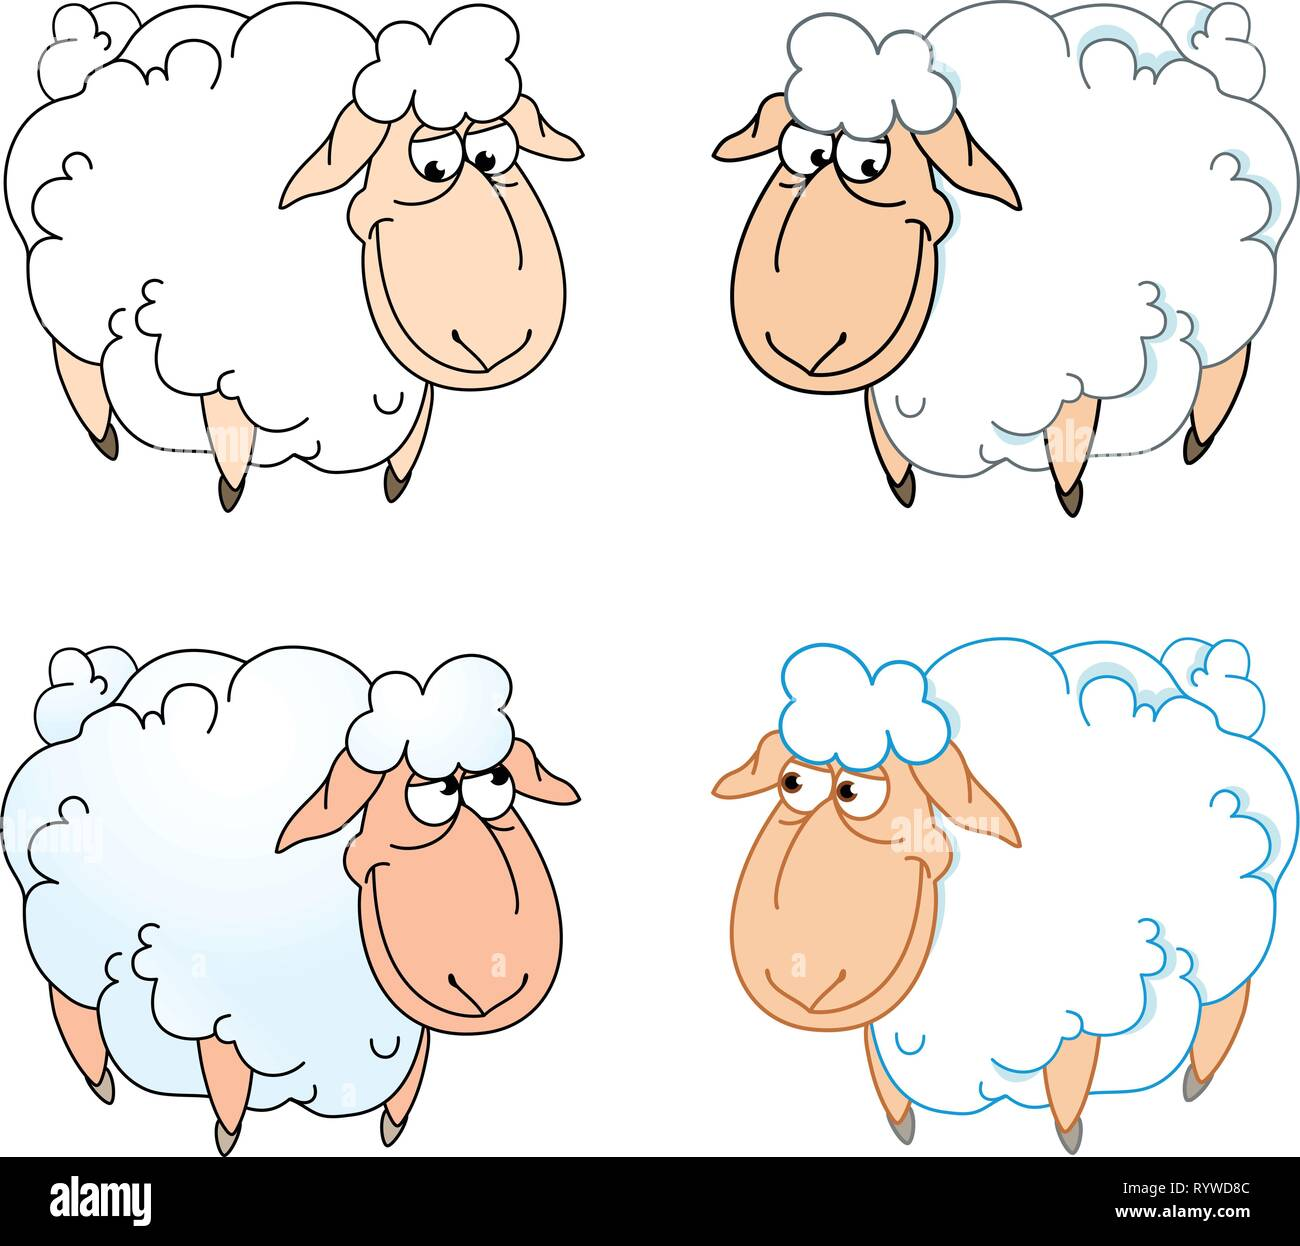 The illustration shows a few funny cartoon sheep isolated on a white background, on separate layers. - Stock Image